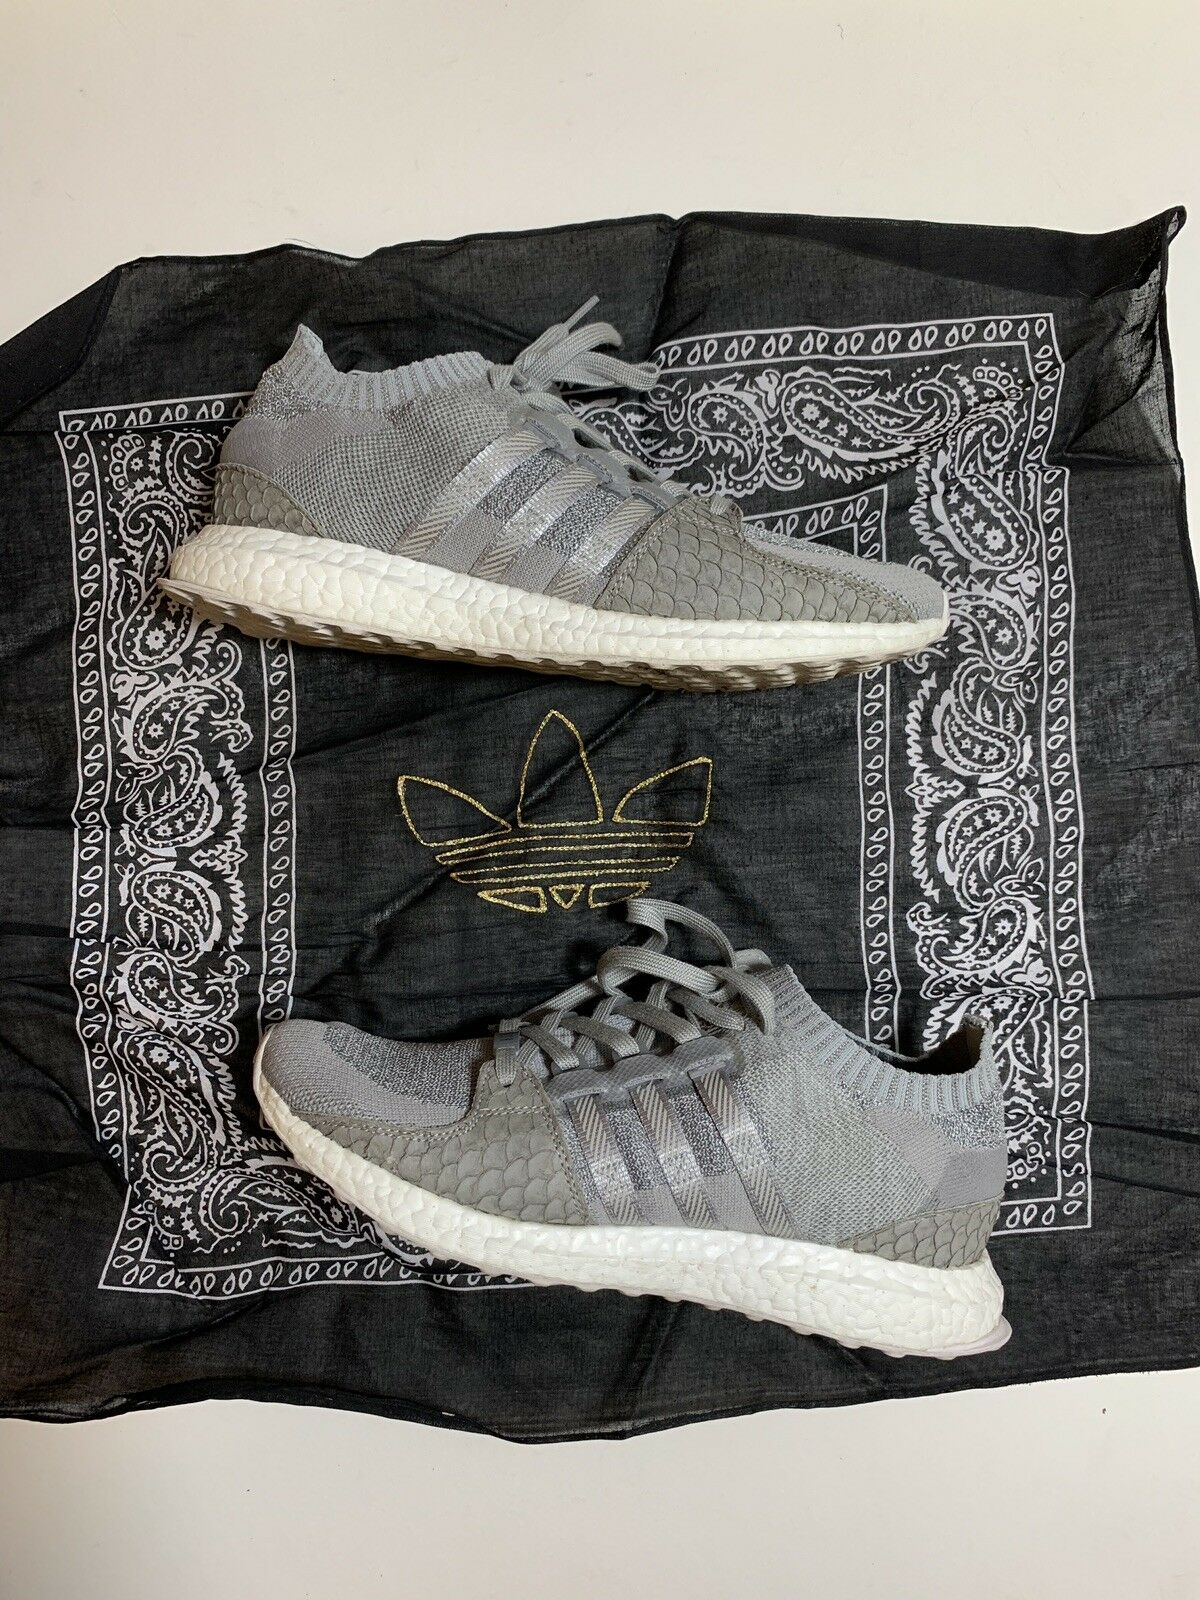 Adidas x Pusha T EQT Support Ultra Boost PK Stone Grey White Size 10 Primeknit